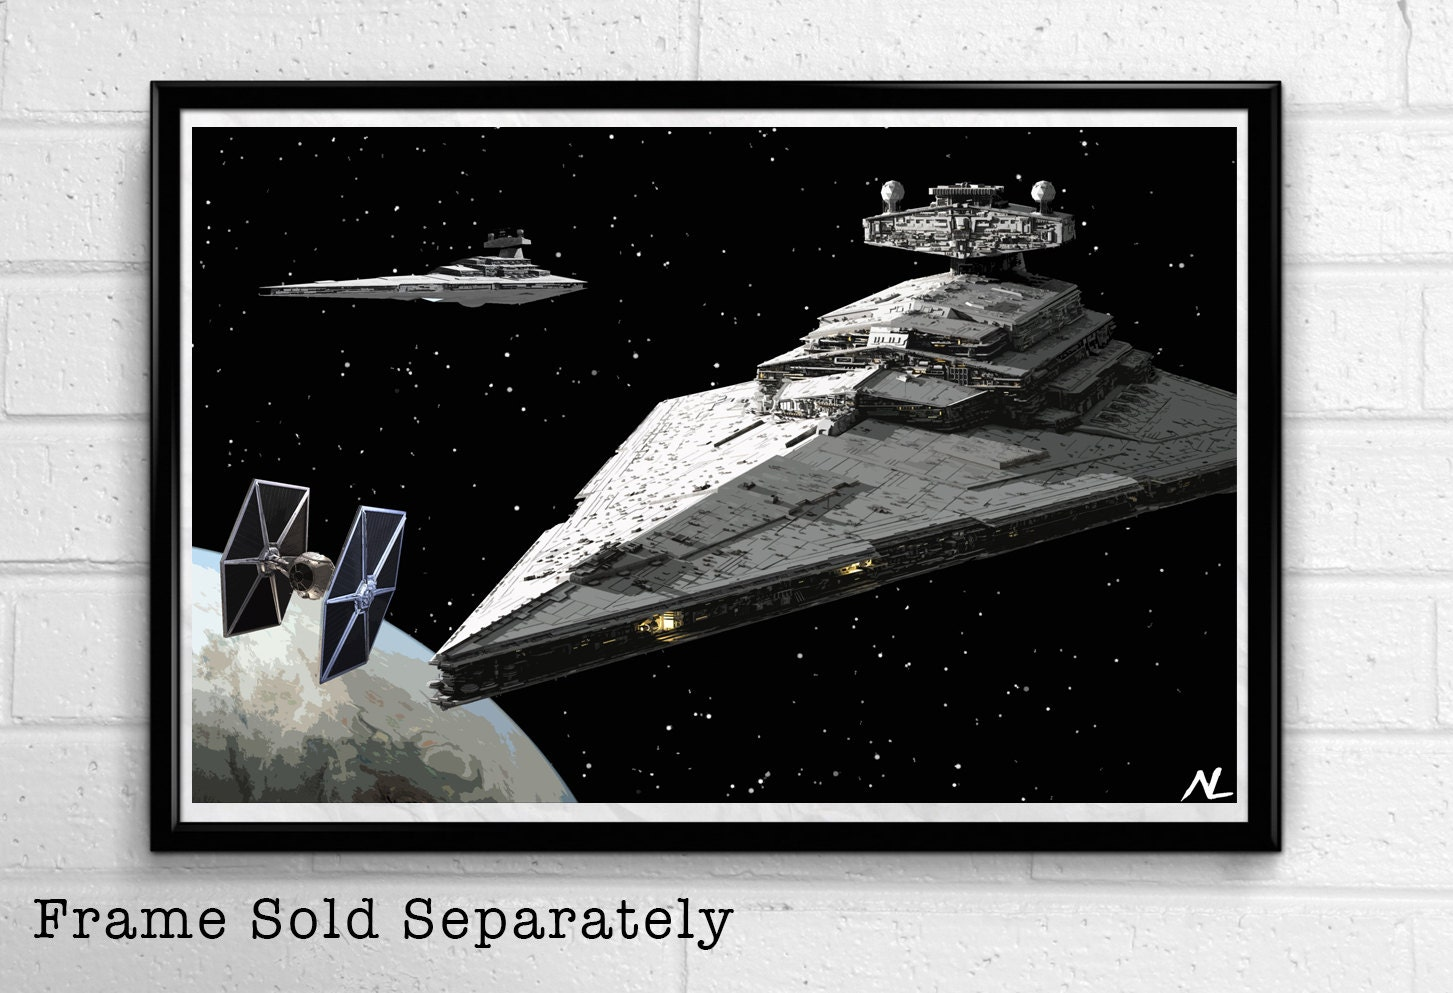 Star wars empire star destroyer sci fi film home decor movie for Sci fi home decor